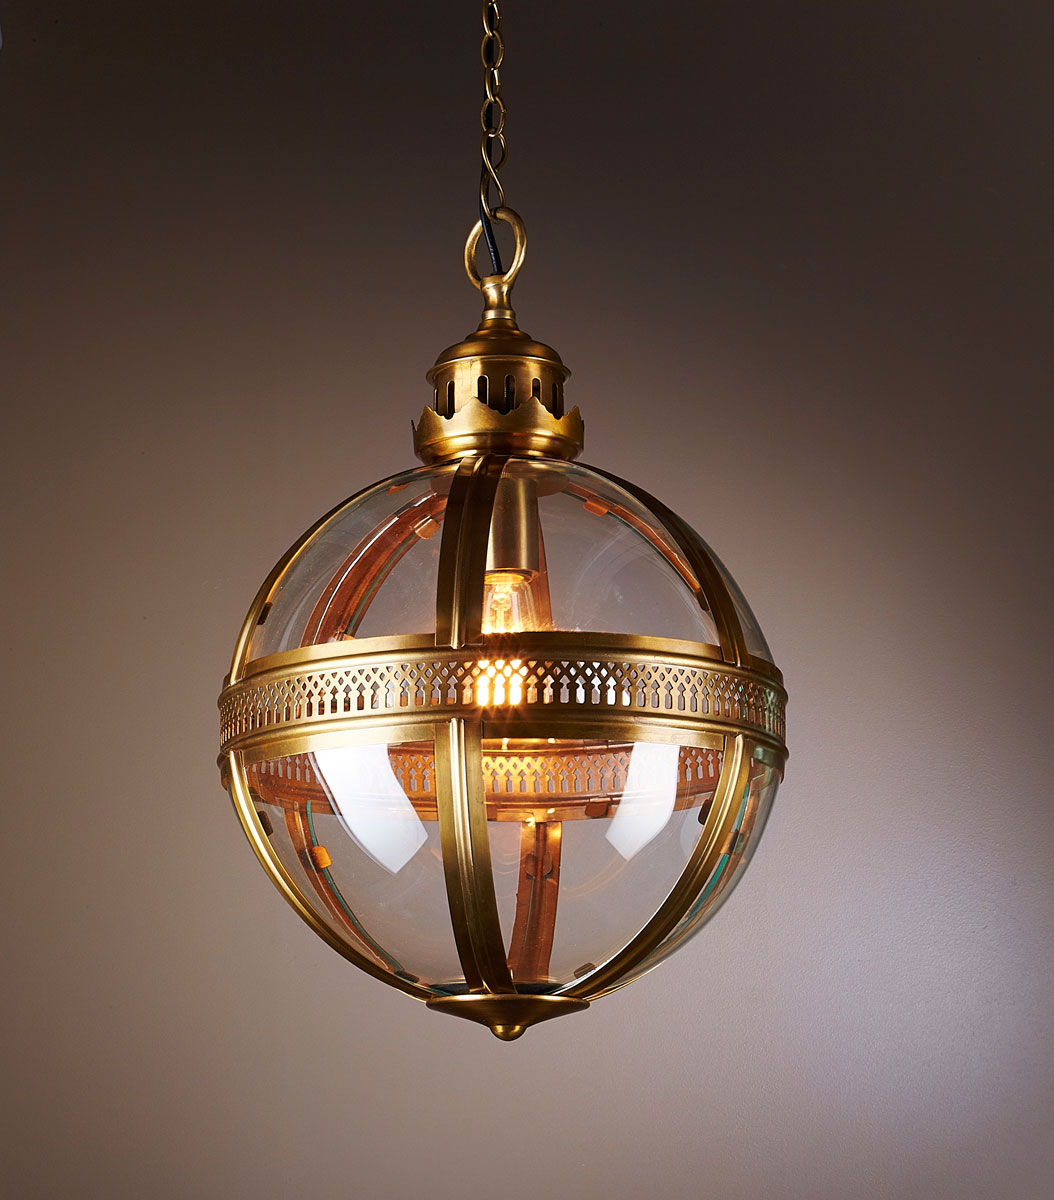 Moroccan Ceiling Lights Australia Home Decor